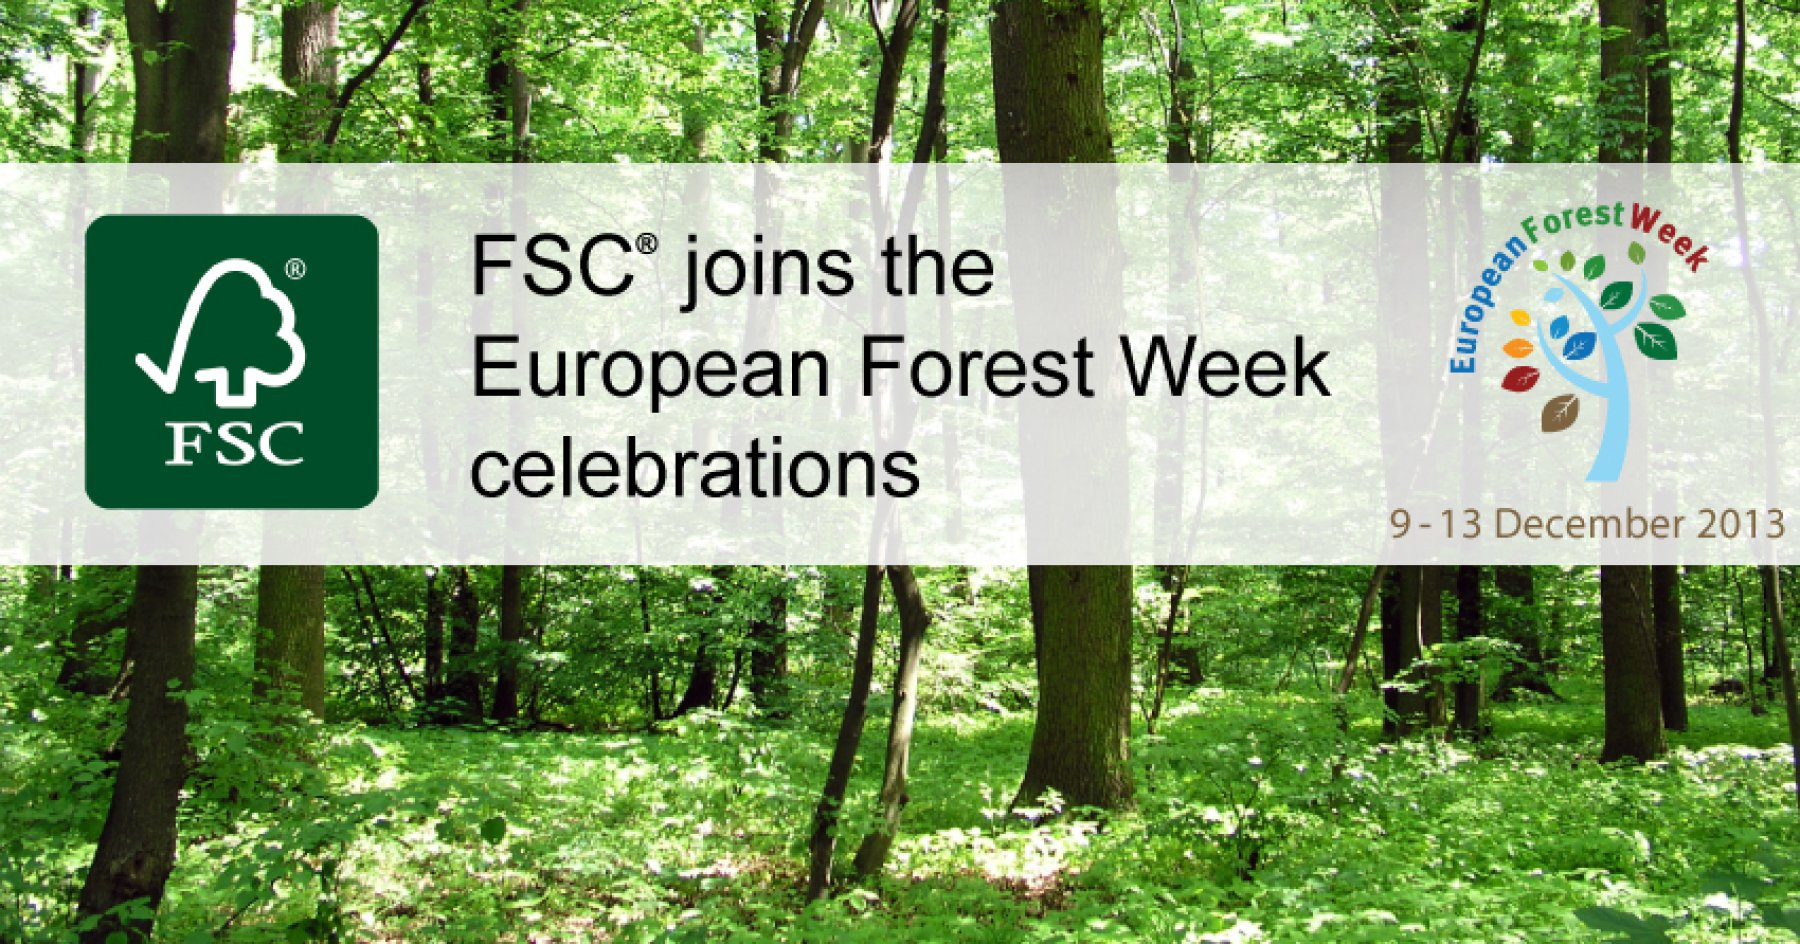 FSC to host a Side Event at the European Forest Week